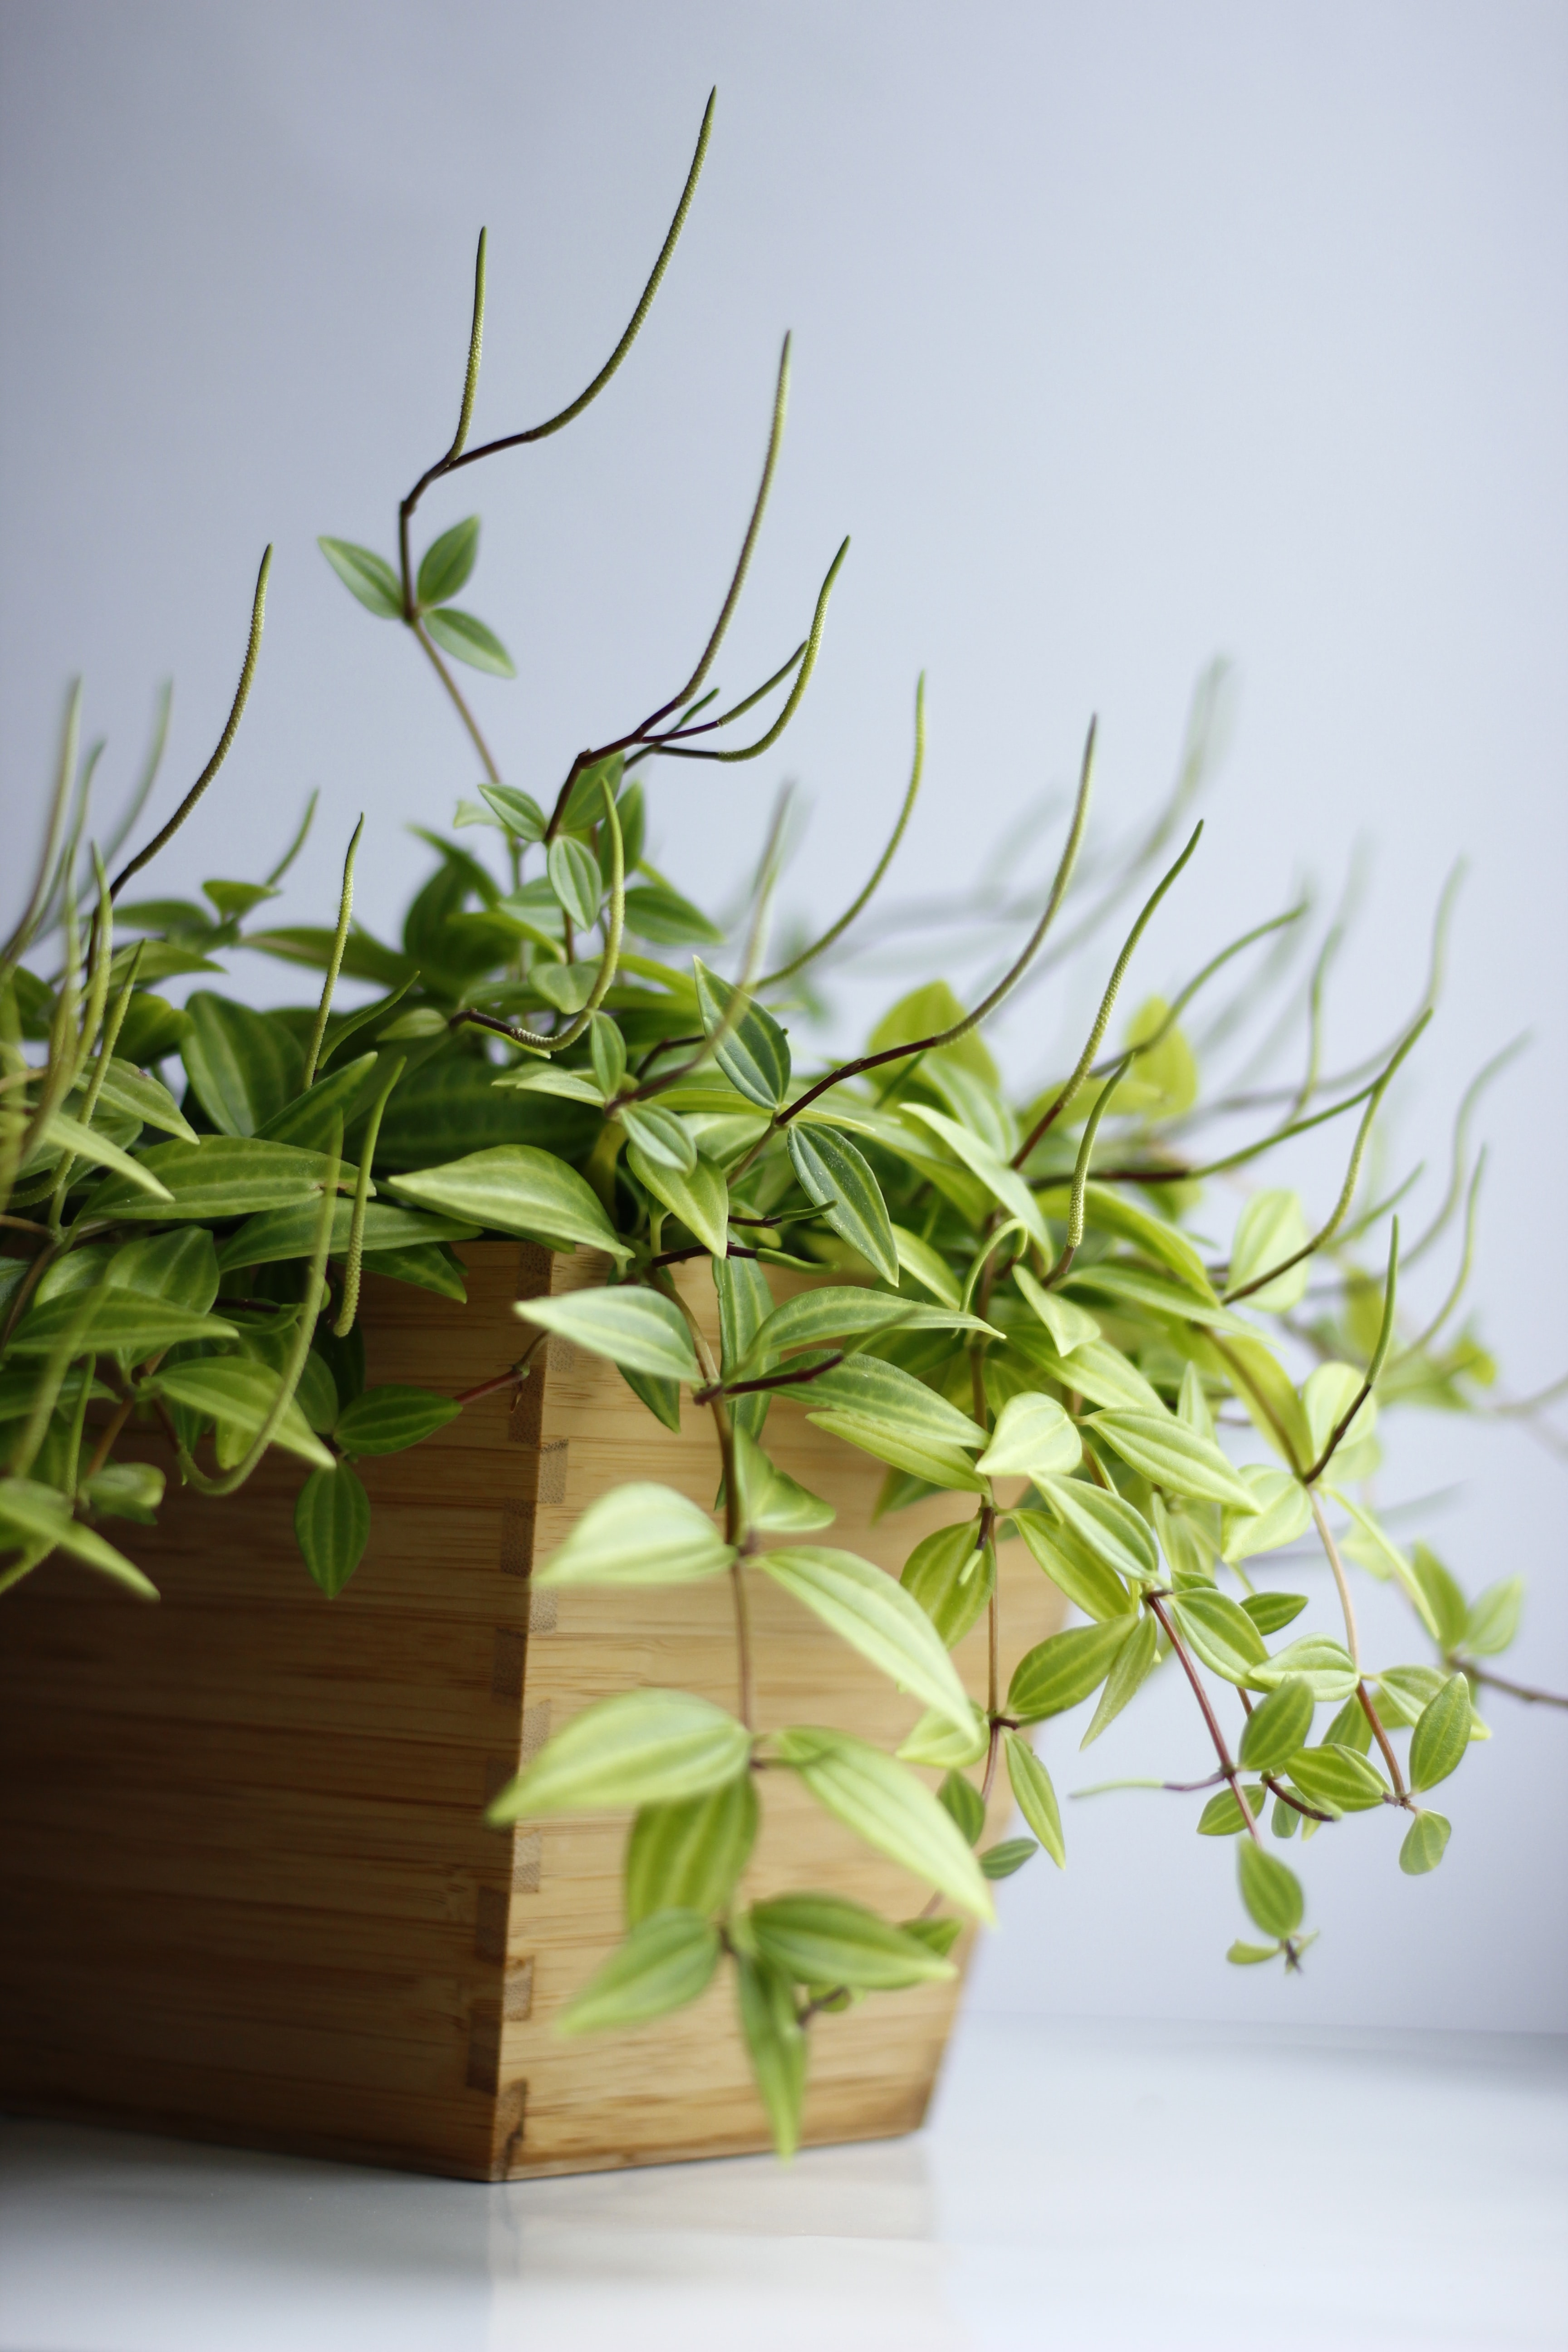 green leafed plant on brown wooden pot